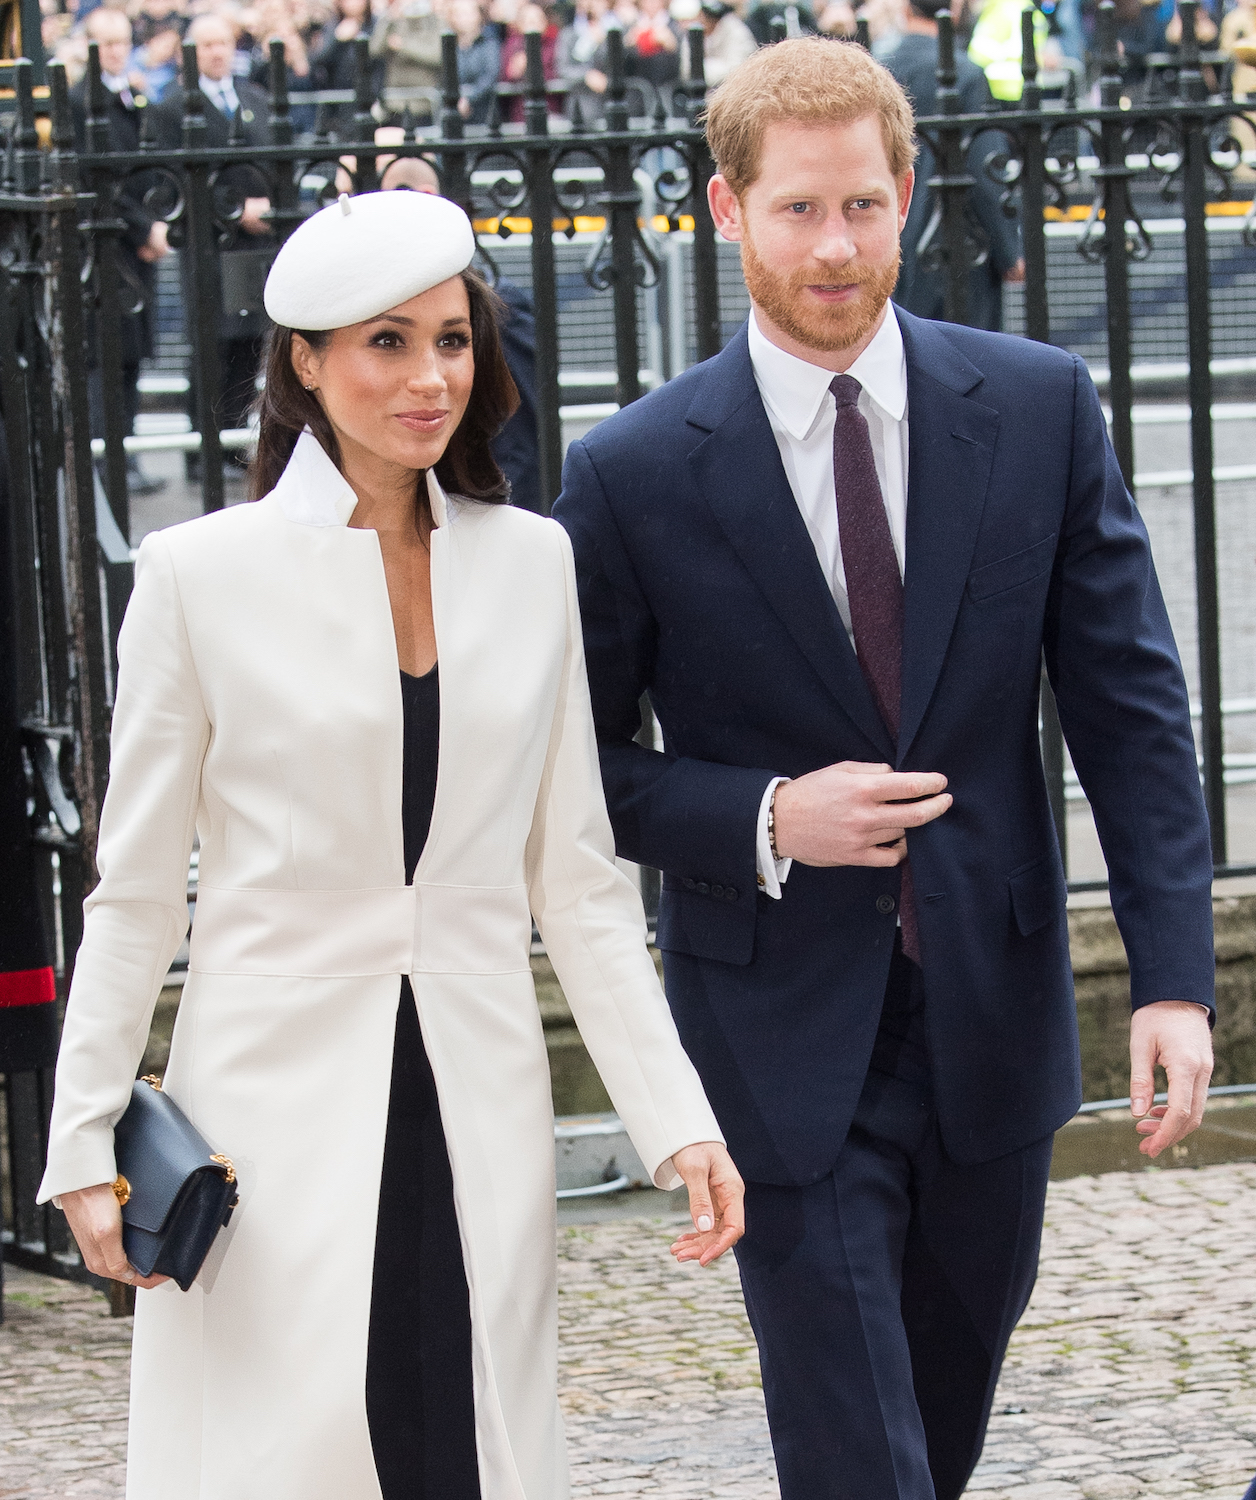 LONDON, ENGLAND - MARCH 12: Meghan Markle and Prince Harry attend the 2018 Commonwealth Day service at Westminster Abbey on March 12, 2018 in London, England. (Photo by Samir Hussein/Samir Hussein/WireImage)